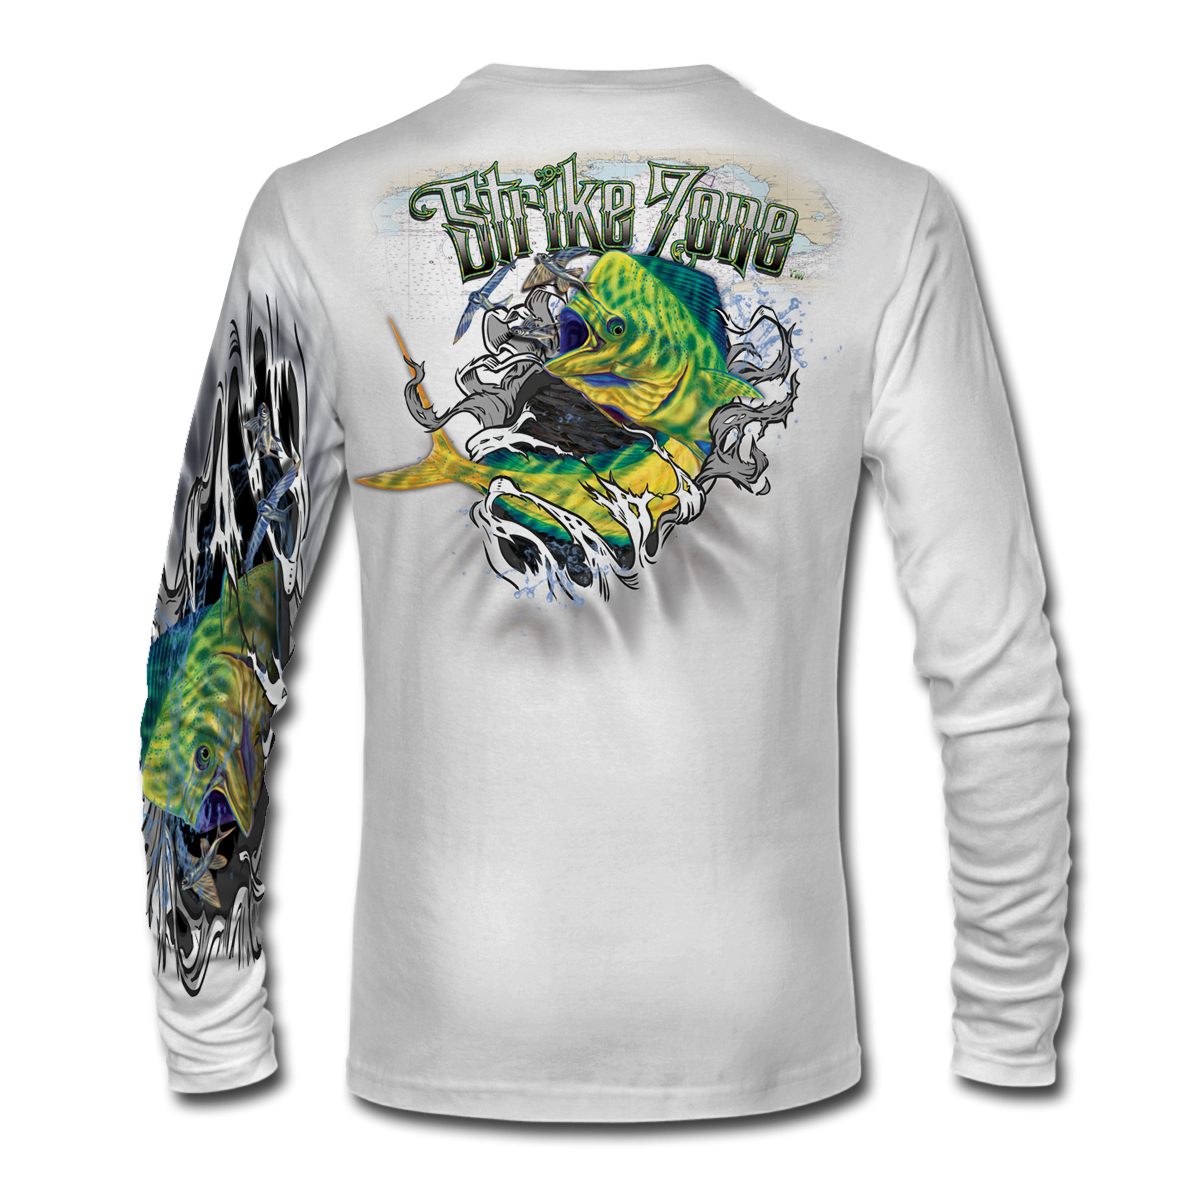 jason-mathias-strike-zone-white-mahi-fishing-shirt-back.png